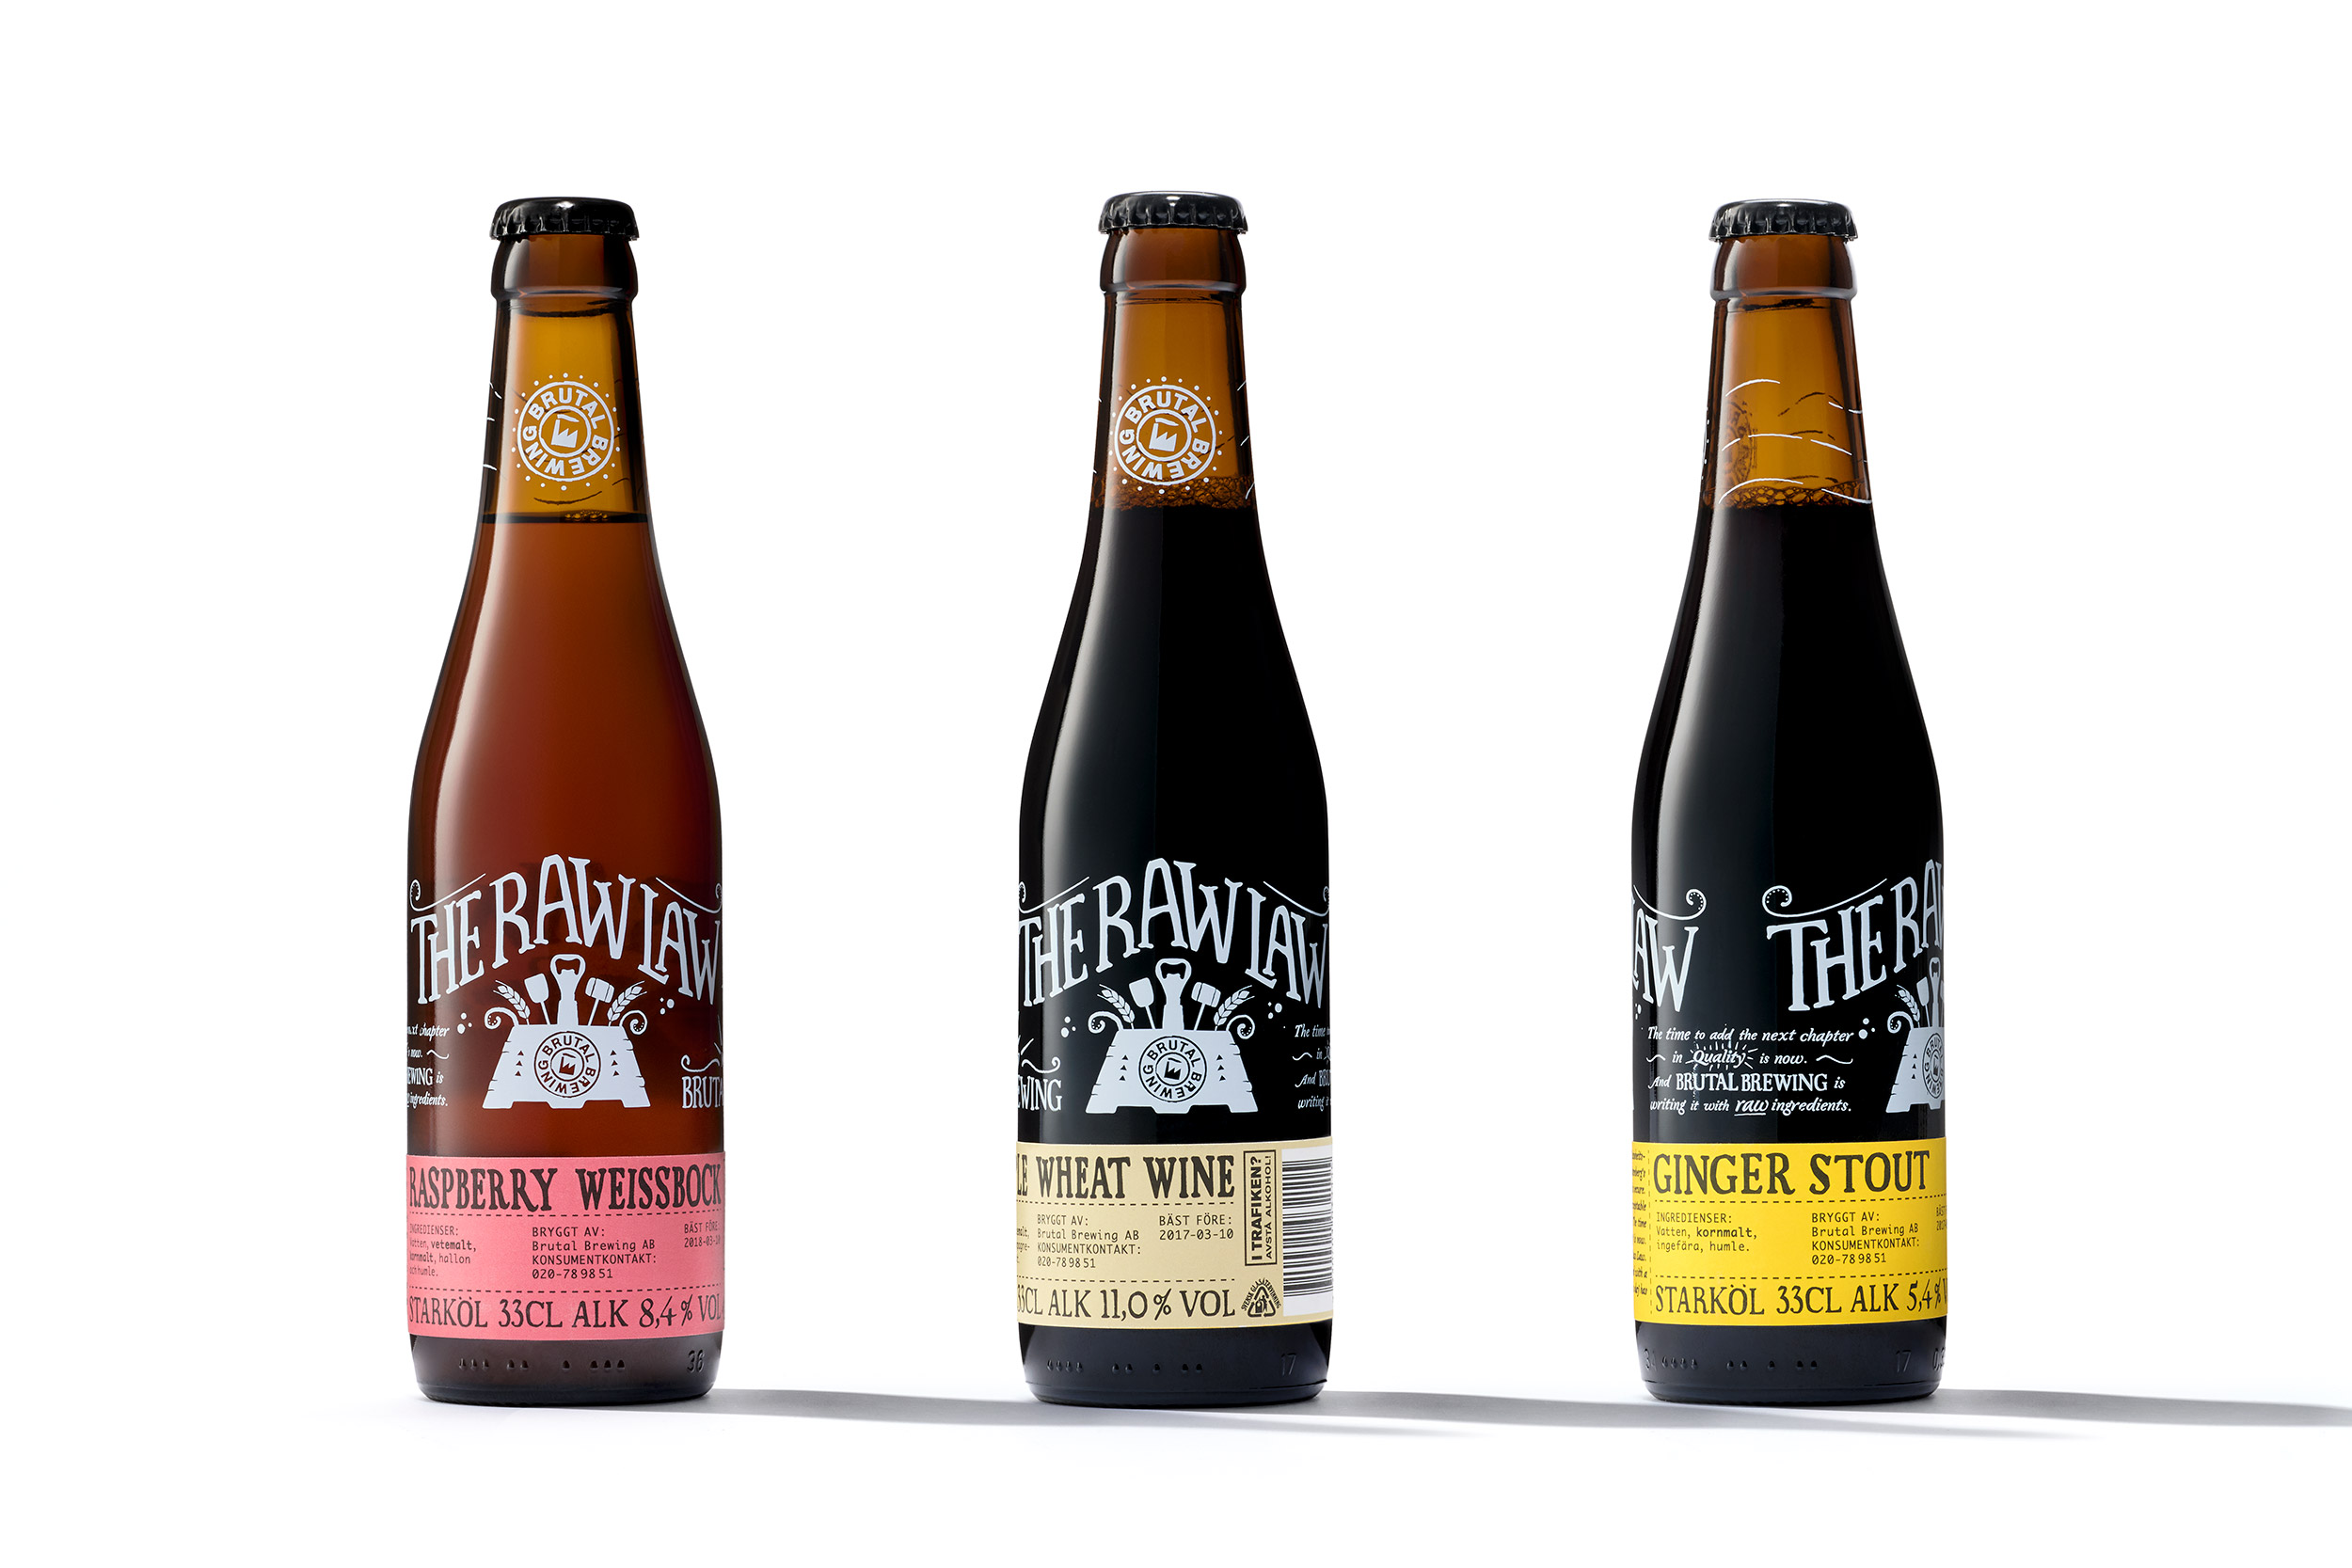 BrutalBrewing_RawLaw_bottles-1